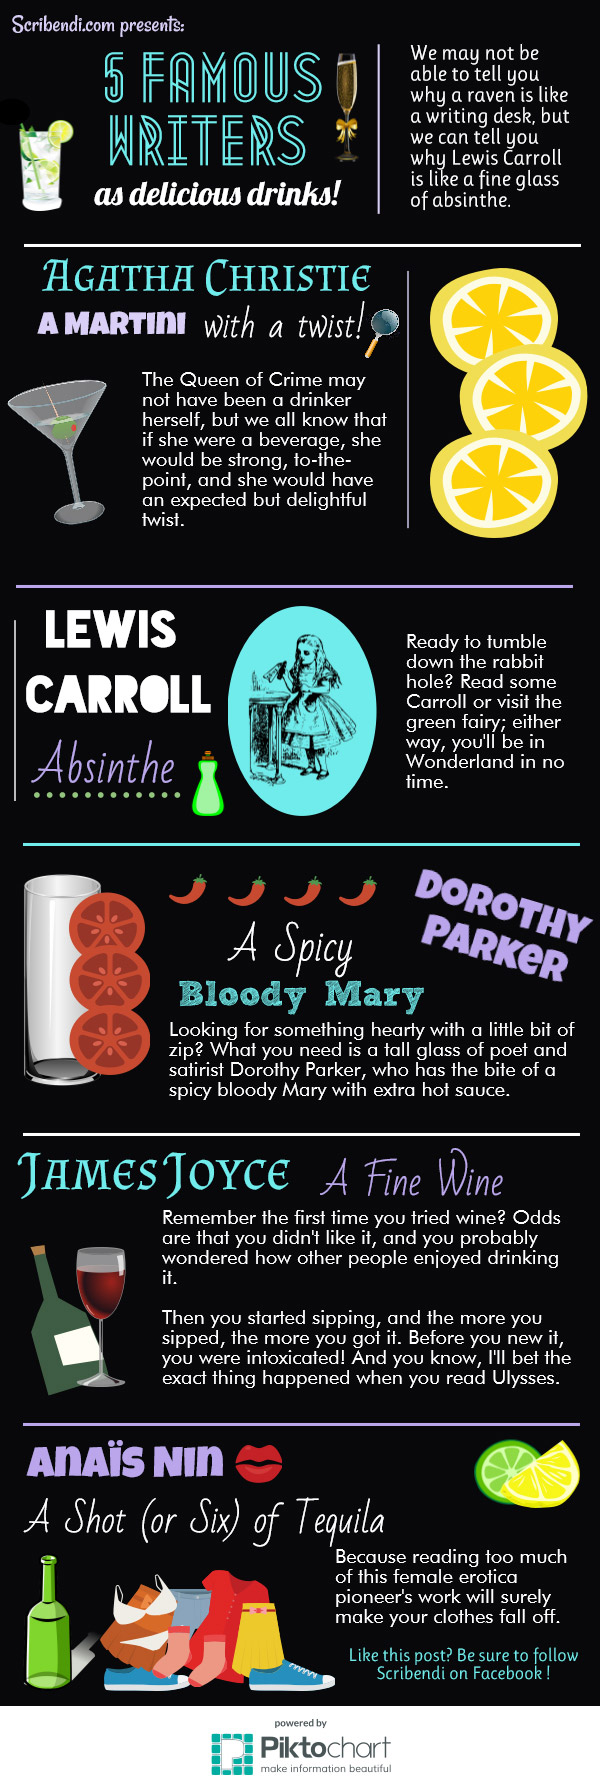 5 Famous Writers as Delicious Drinks